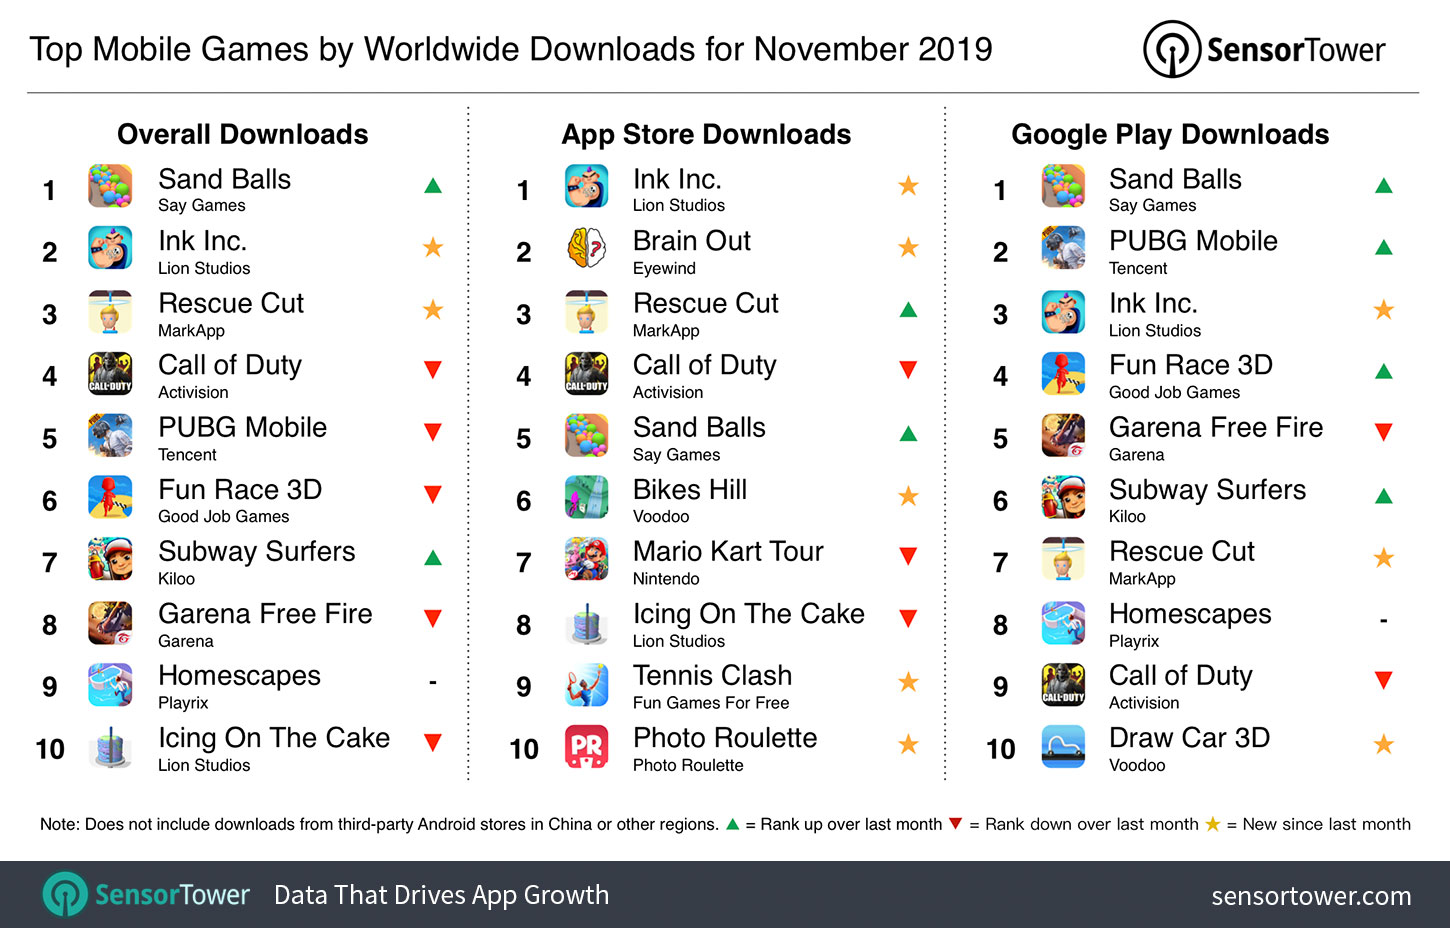 Top Mobile Games Worldwide For November 2019 By Downloads